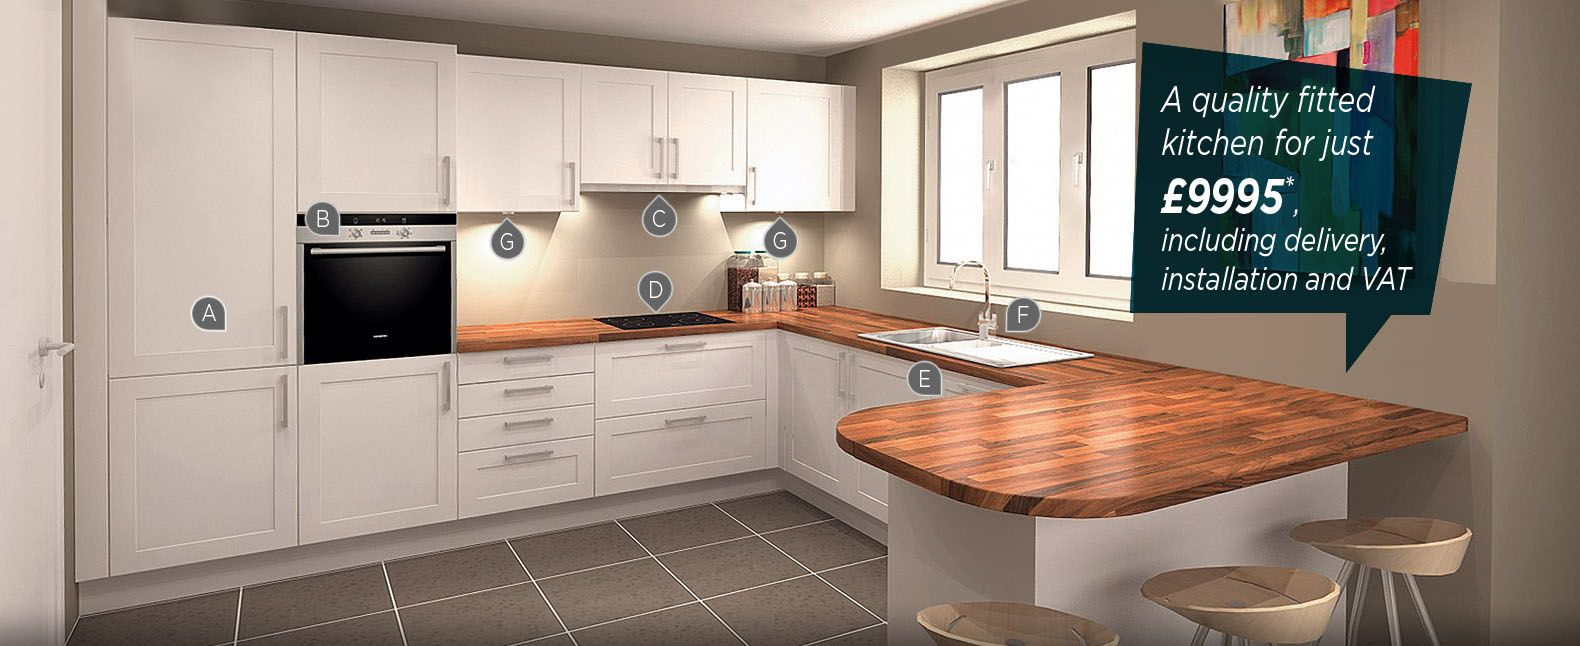 Quality fitted kitchen for just 9995 including